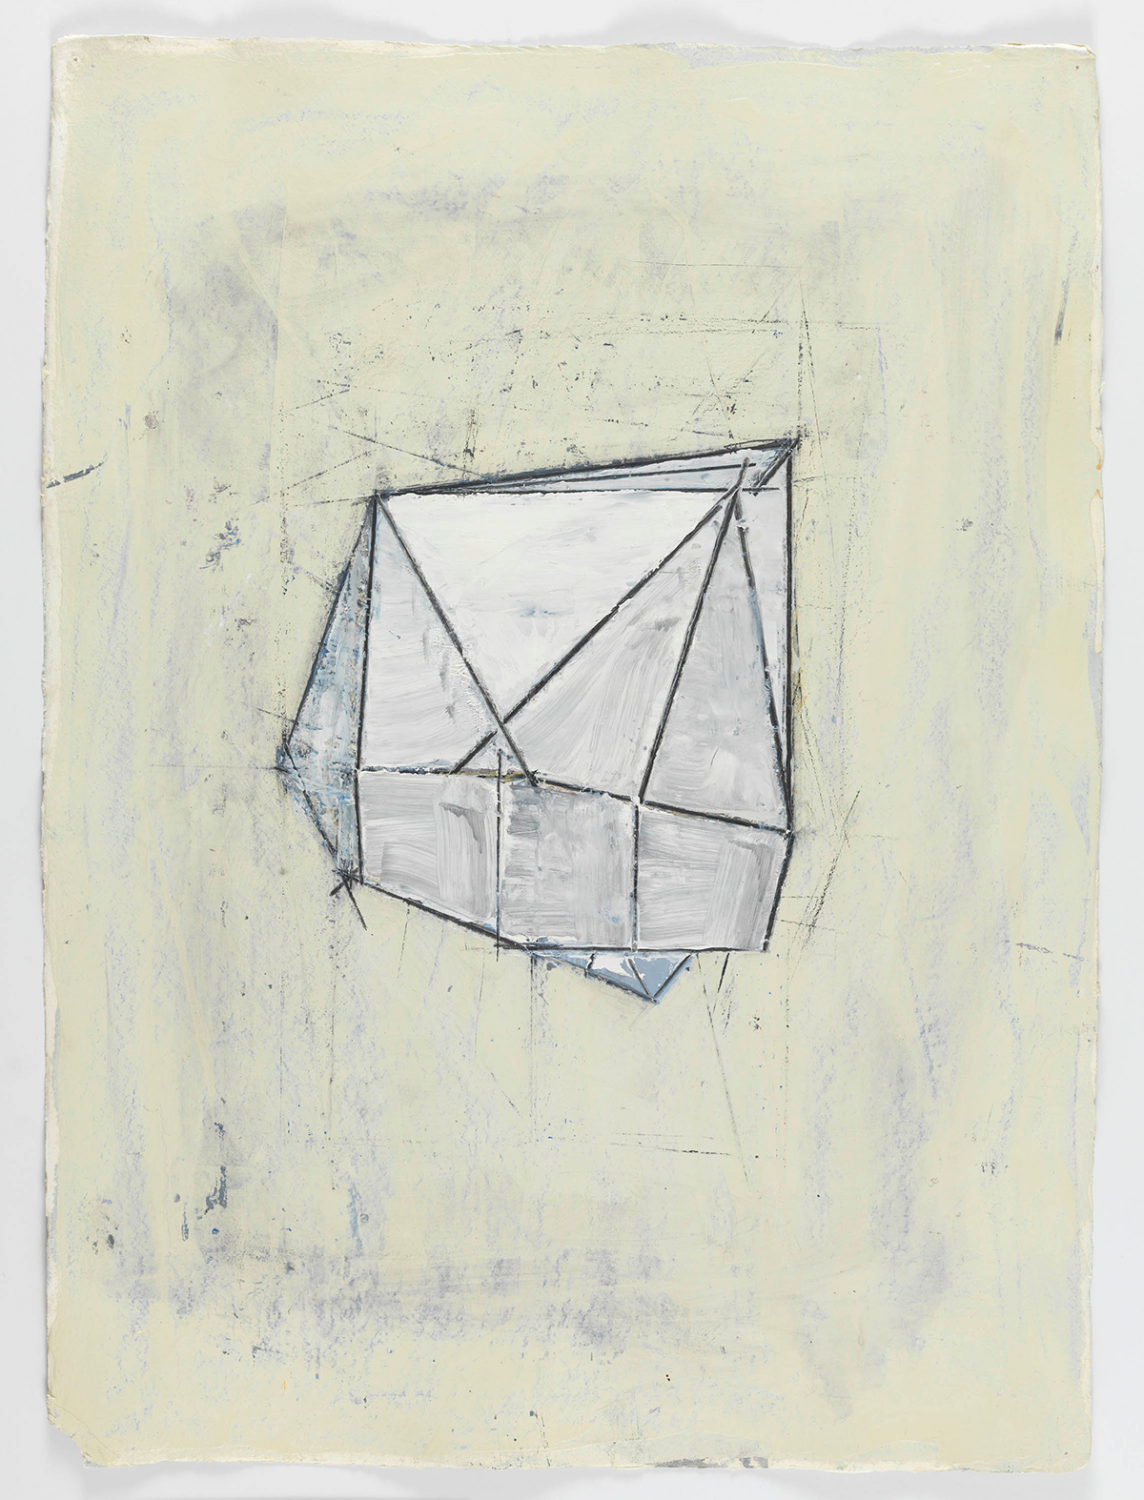 Oil and wax drawing of an irregular prism in whites and greys to show the dimensionality of the shape. It seems to come forward from the paper in 3 dimensions. By abstract artist Louise Fishman